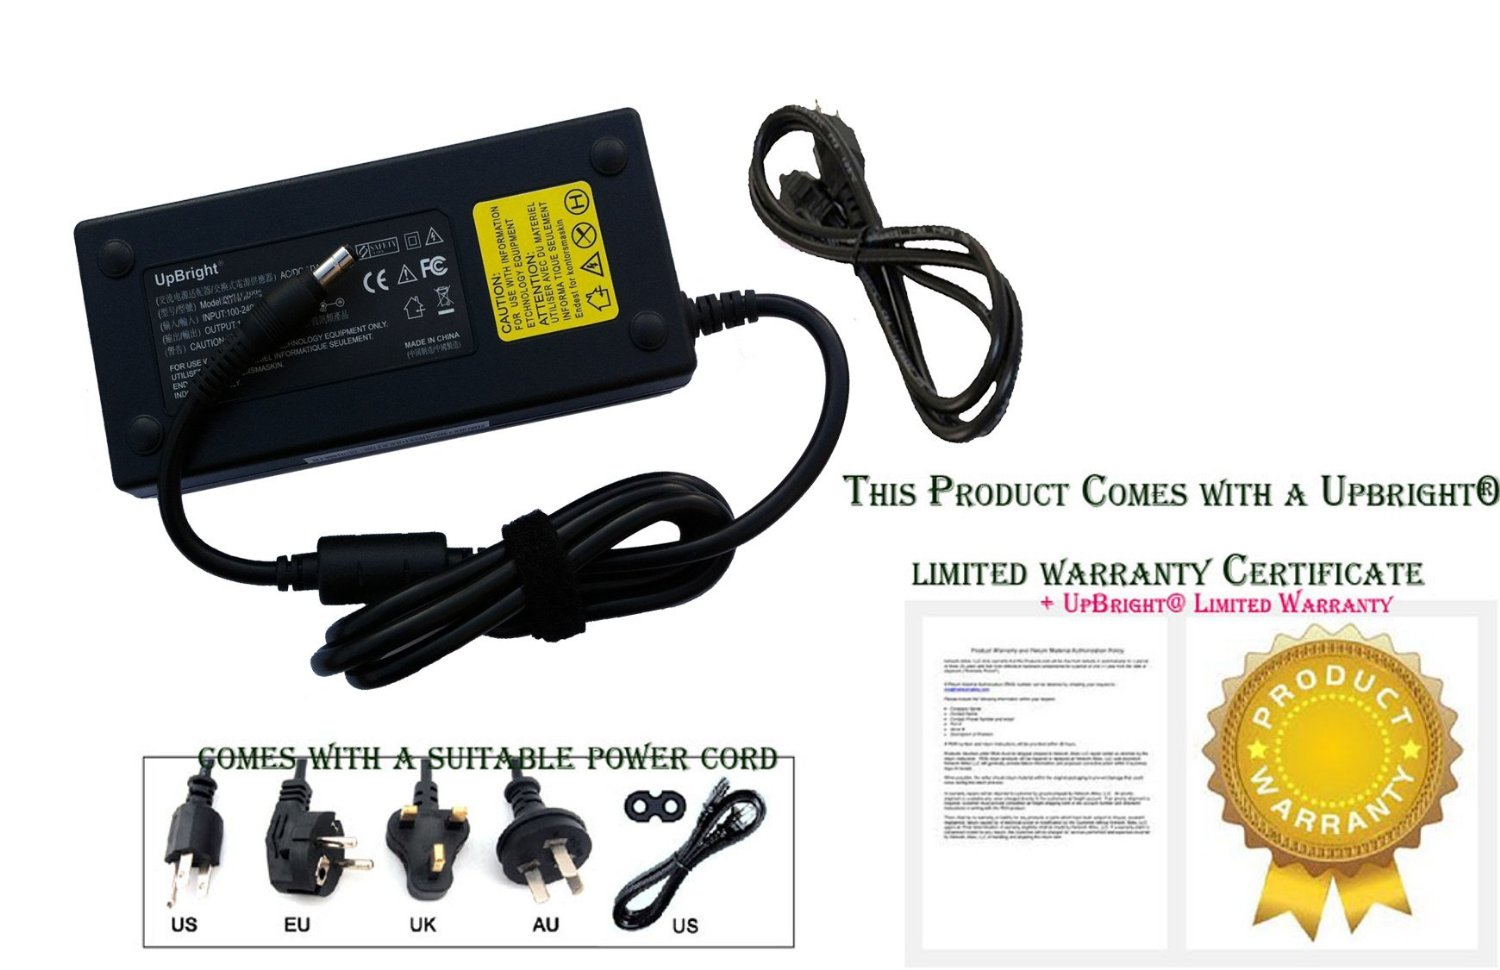 Acer 120W Replacement AC adapter for Acer Aspire V3-772G Series Notebook: Acer Aspire V3-772G-54208G75Makk, Acer Aspire V3-772G-747a8G1TMckk, V3-772, V3-772G, V3-772G-9460, V3-772G-9653, V3-772G-9821, V3-772G-9822, V3-772G-9829, 100% Compatible with P/N: AK.120AP.022, PA-1200-01, ADP-120ZB BB,